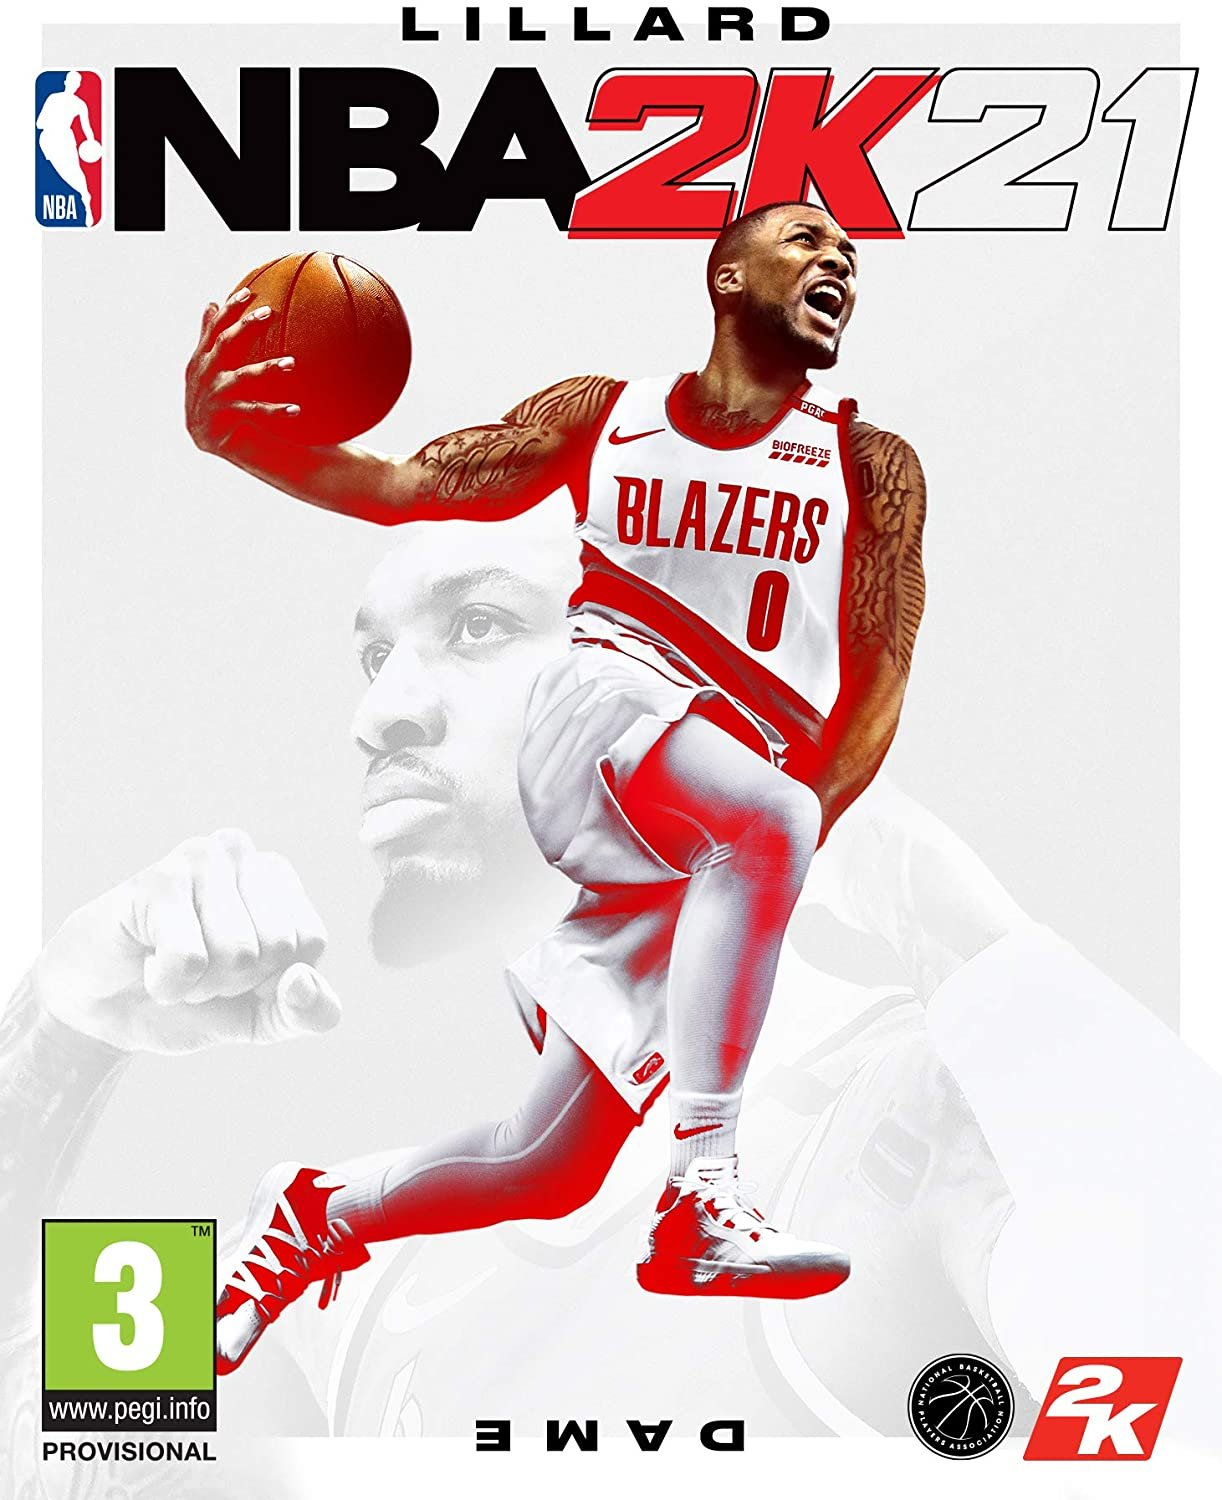 Poster for NBA 2K21